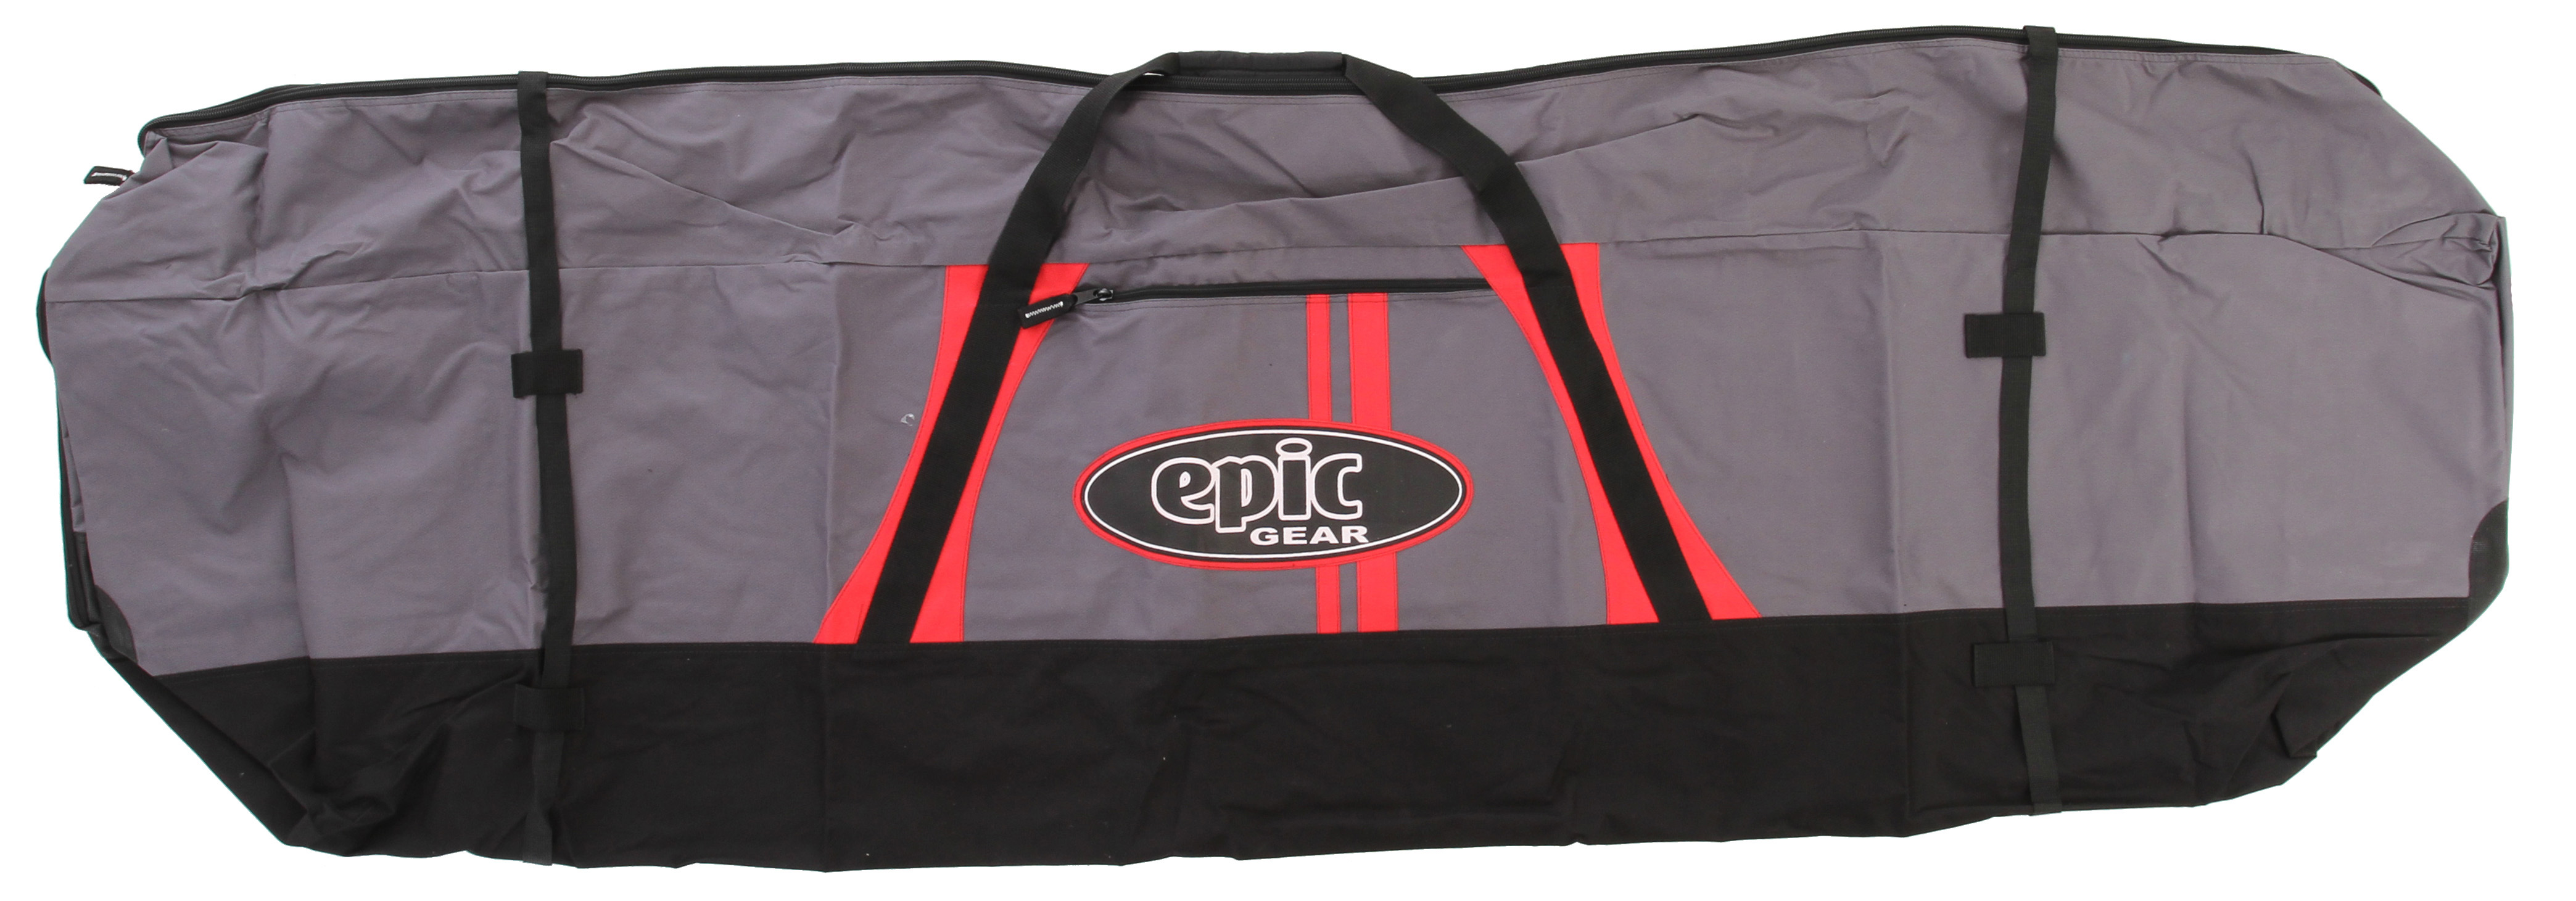 Wake This bag adjusts from 230cm to 260cm to hold any quiver of sails. Cinch straps help hold everything in place and eliminate roof rack flapping. Plastic zipper will not corrode - $105.00